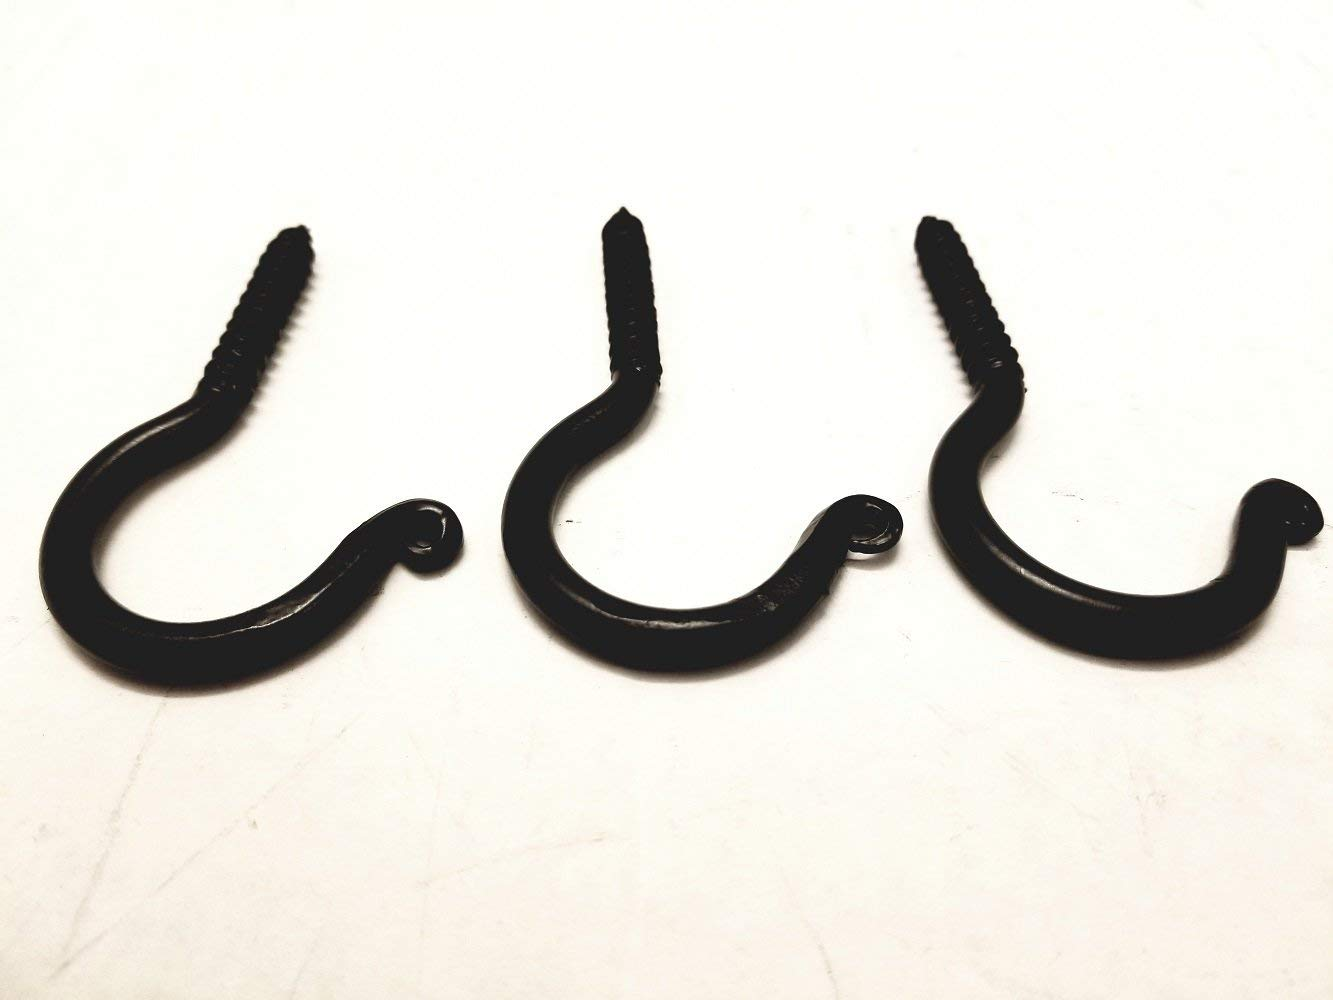 "3 Pack Wrought Iron Ceiling Hook Screw Country Primitive Décor - Each Hook is 3"" Long"